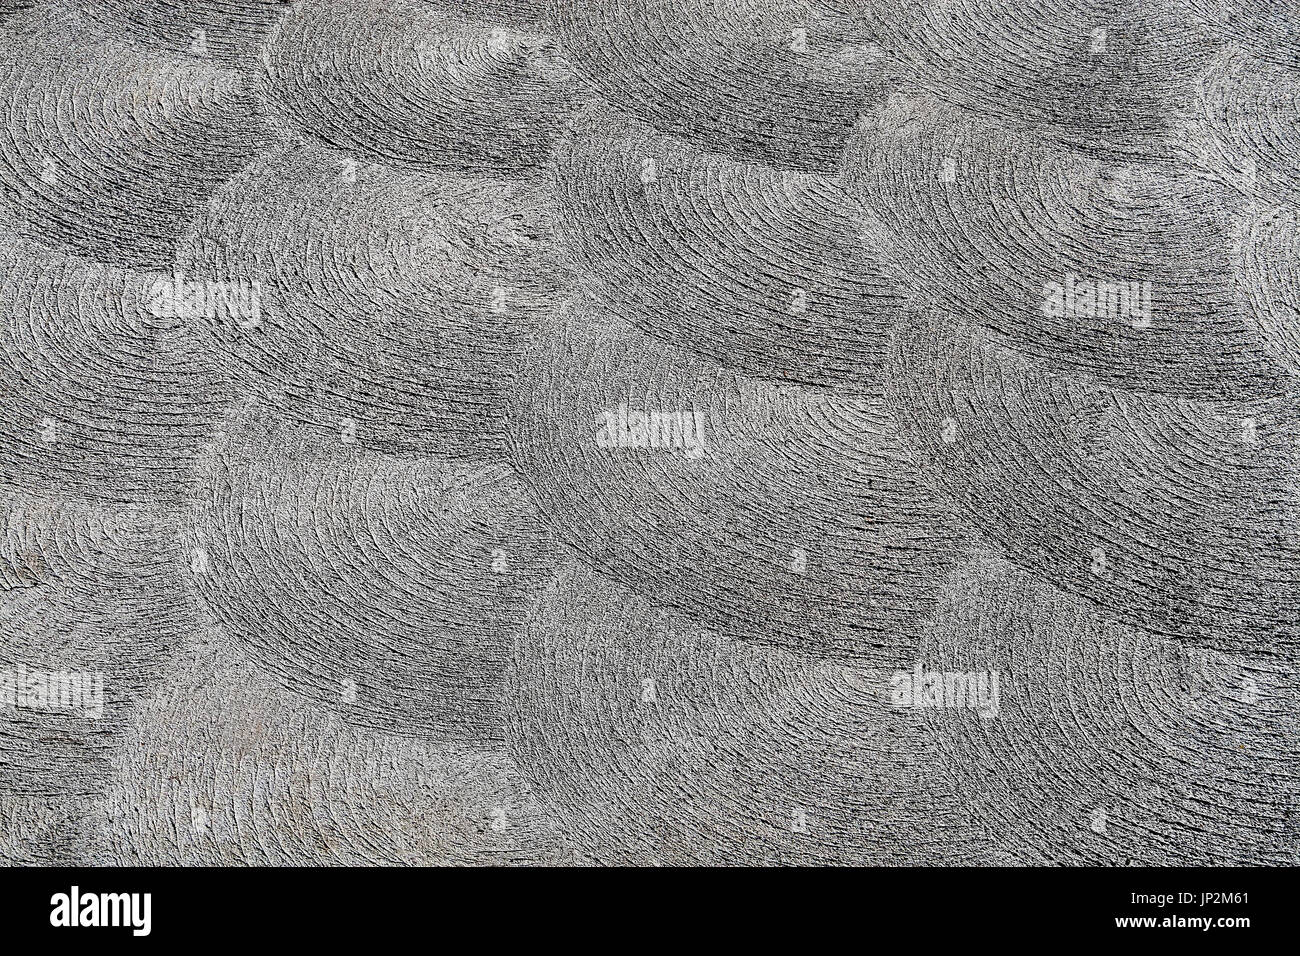 Decorative swirling and grooved monochromatic abstract pattern on sidewalk - Stock Image